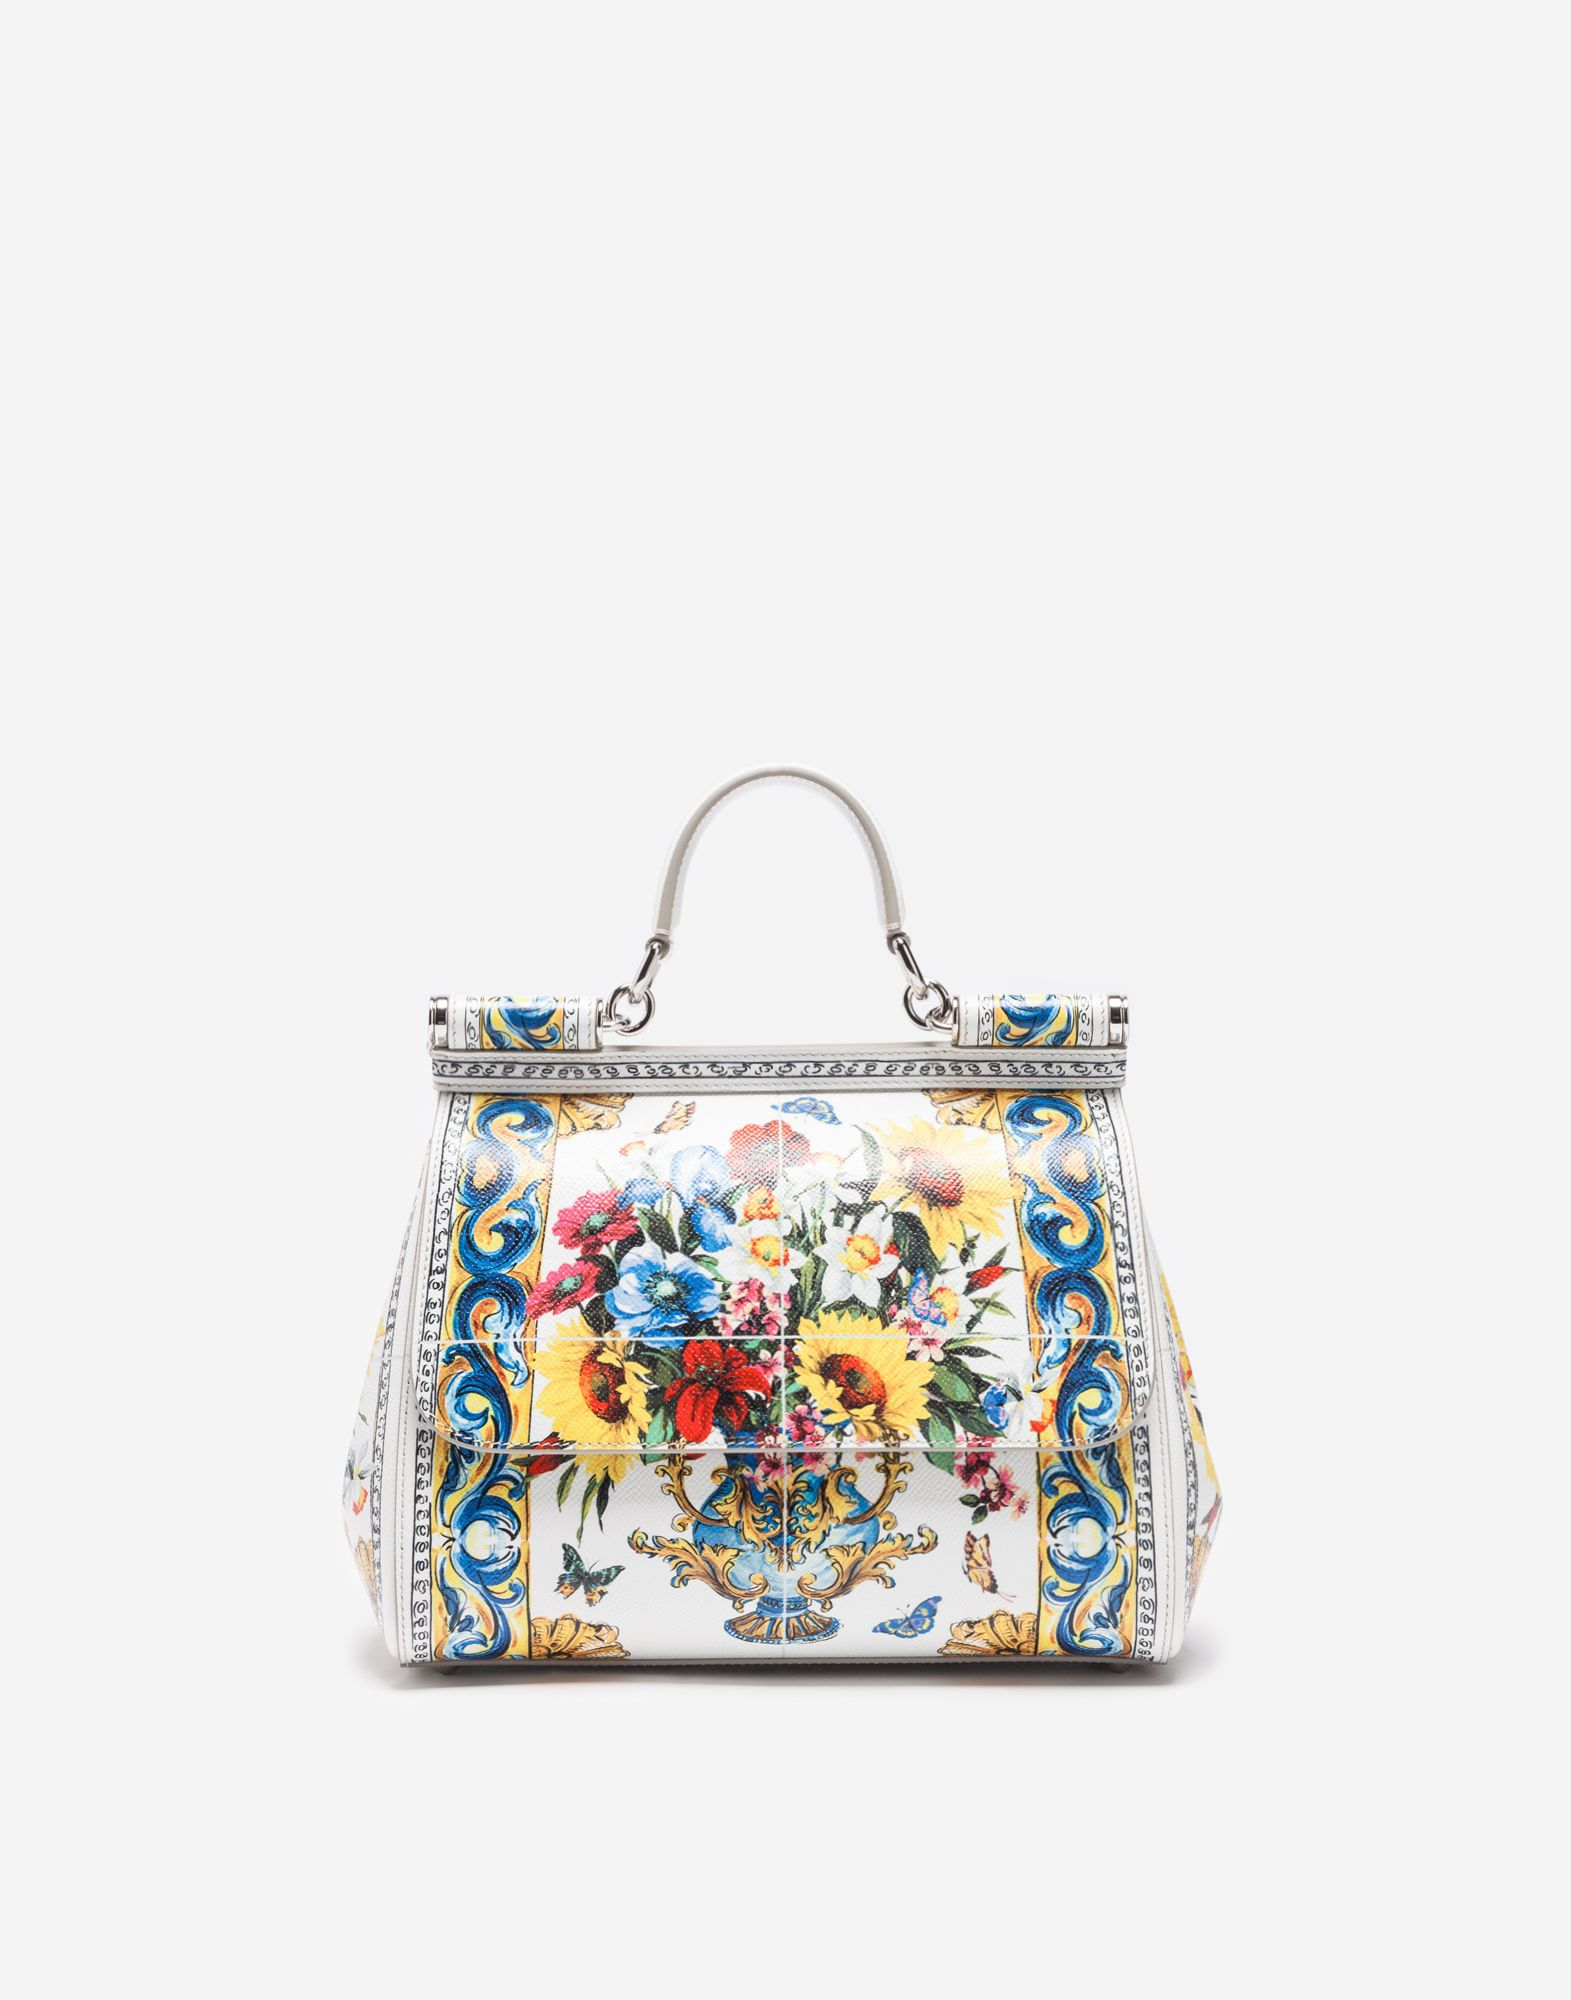 2aa9a7393417 DOLCE   GABBANA MEDIUM SICILY BAG IN PRINTED DAUPHINE LEATHER.   dolcegabbana  bags  lace  leather  lining  shoulder bags  hand bags   cotton